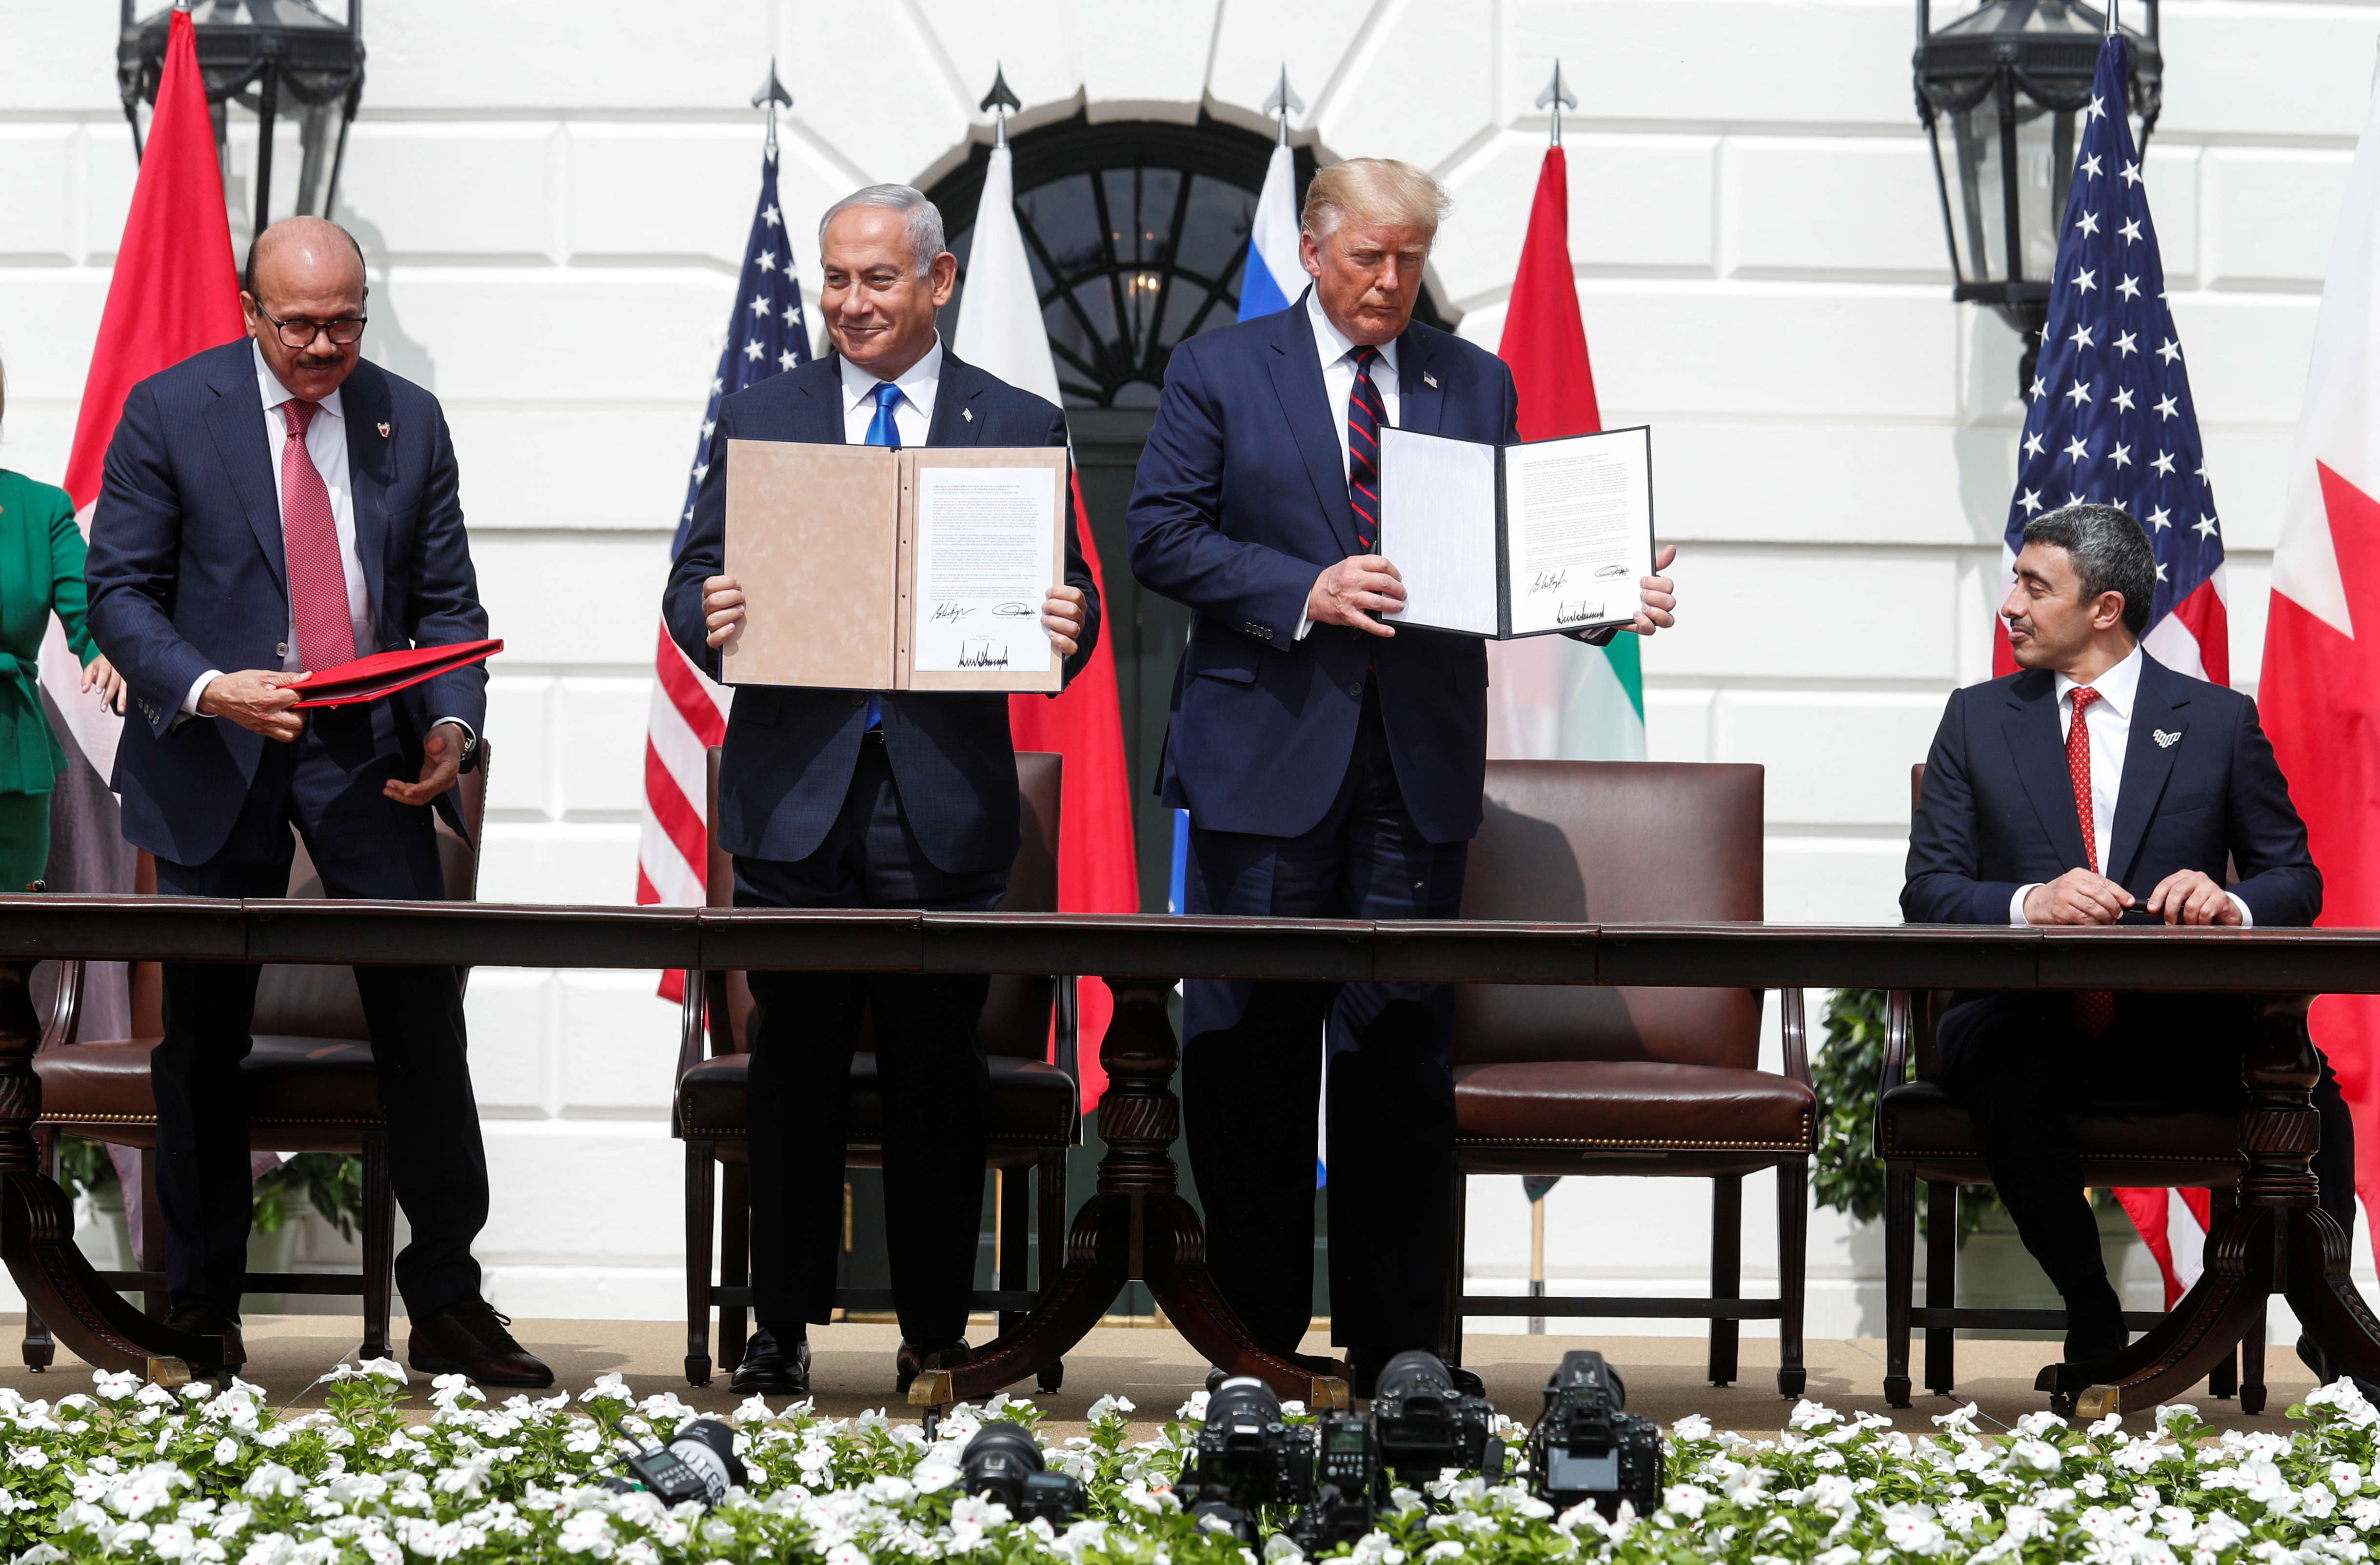 UAE and Bahrain sign deals with Israel